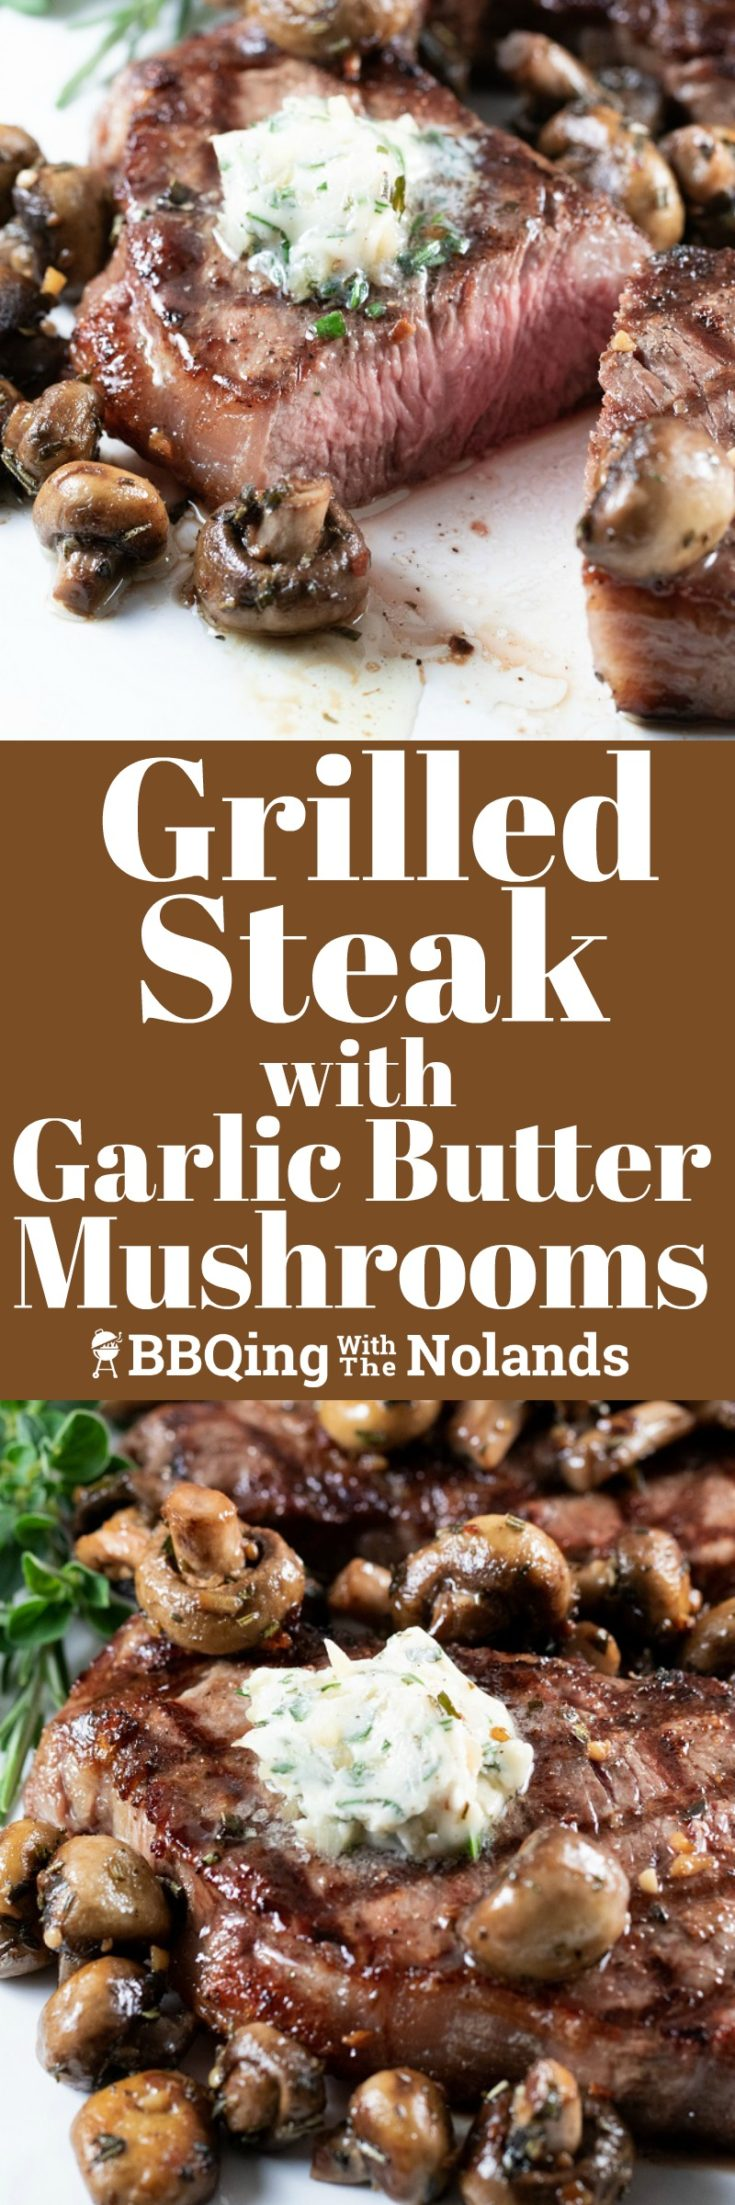 This Grilled Steak with Garlic Butter Mushrooms is a recipe that the whole family loved.